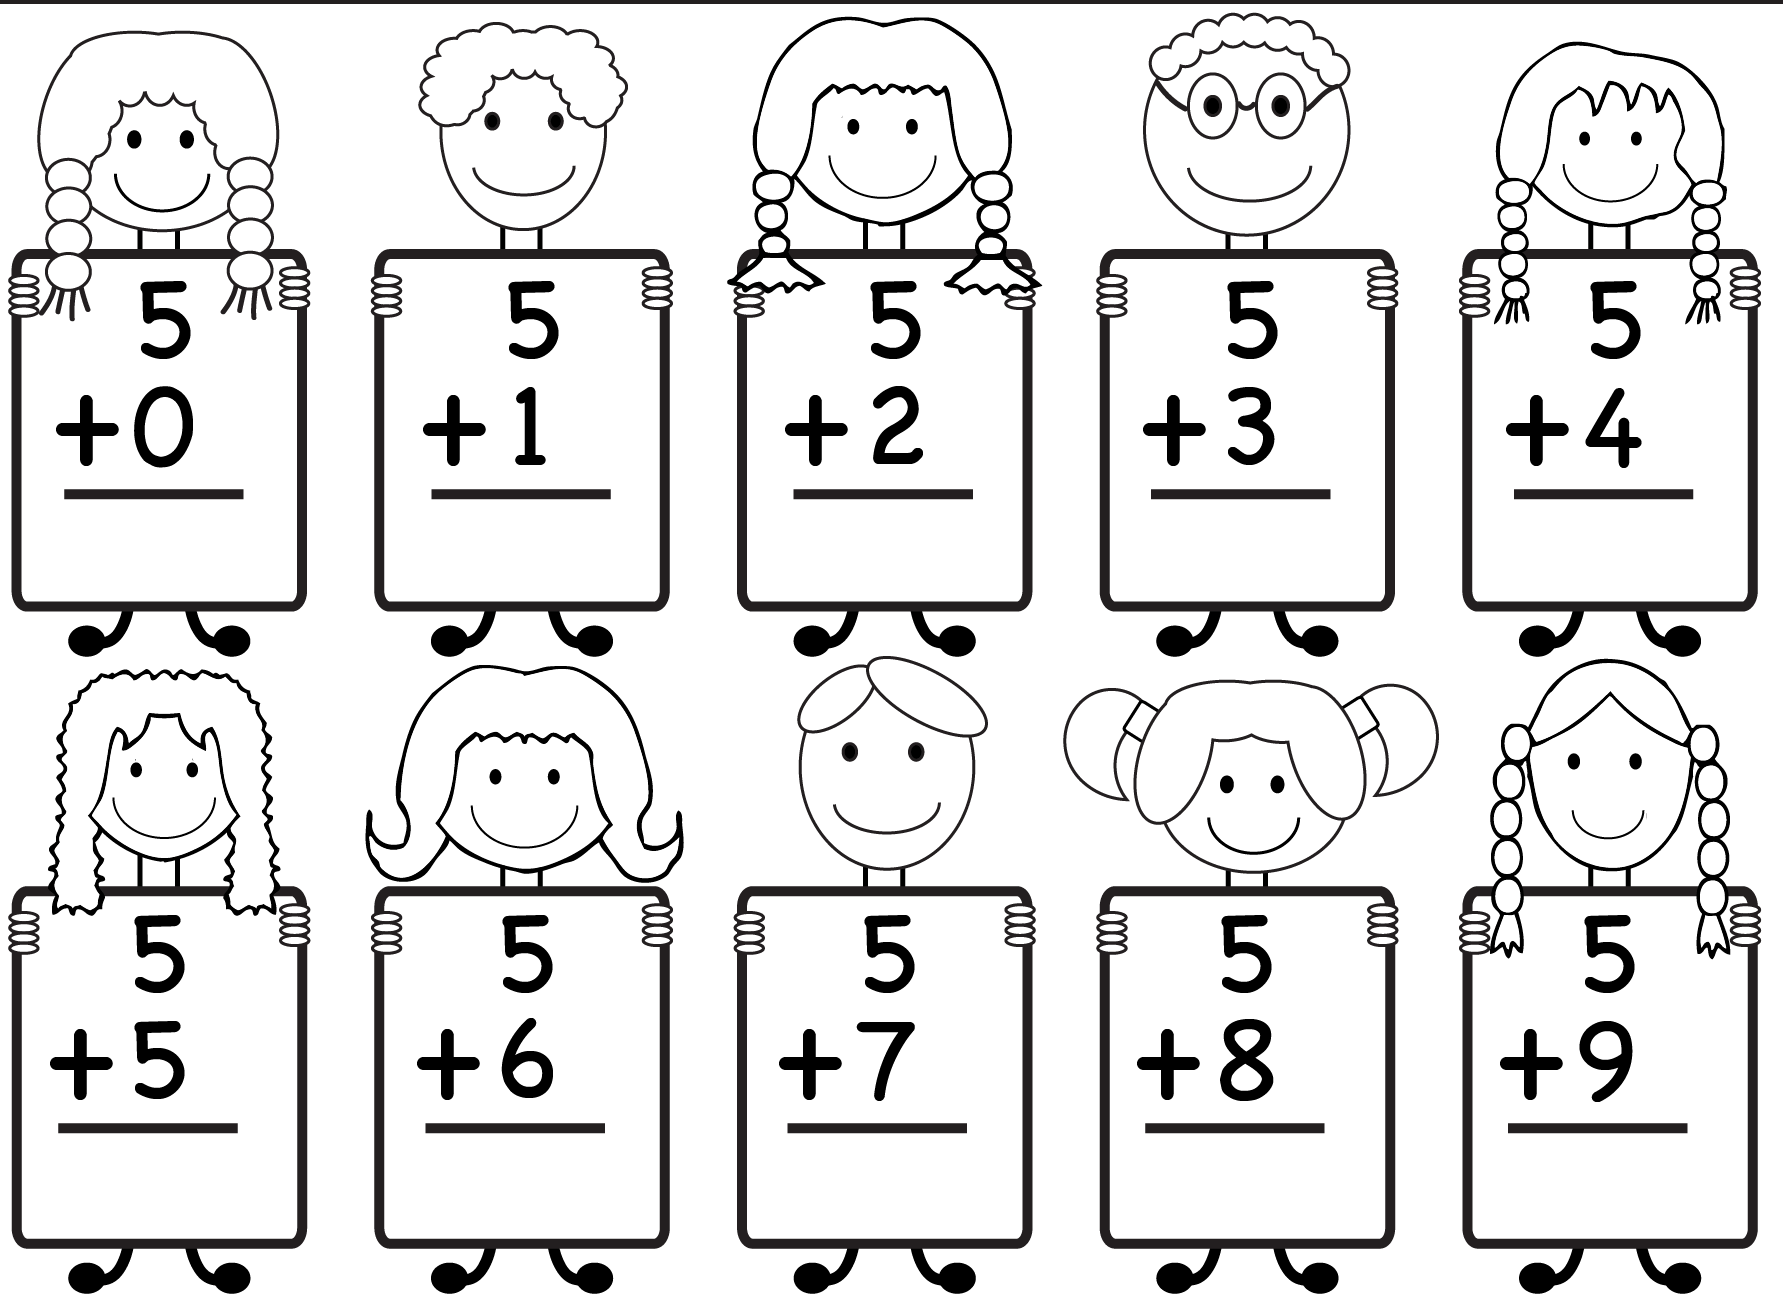 Printable Kindergarten Worksheets : Free printable kindergarten math worksheets